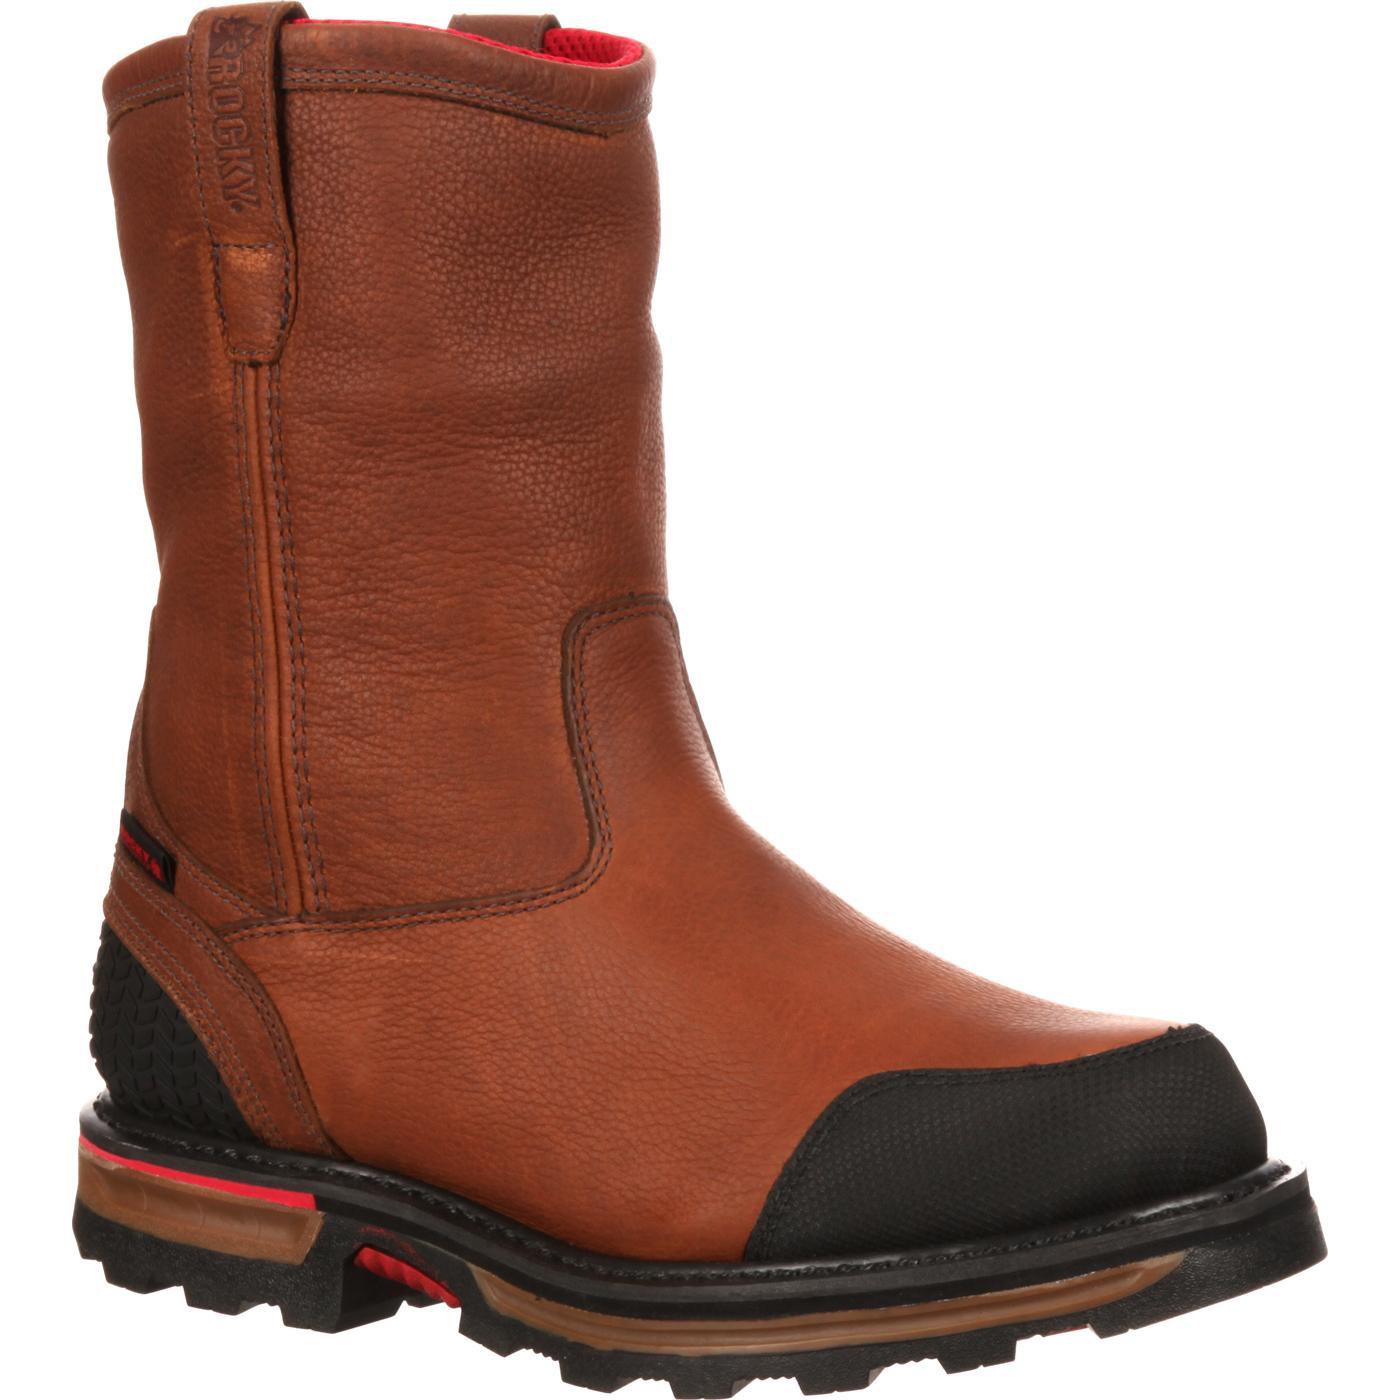 Classic Clog by Crocs at time2one.tk Read Crocs Classic Clog product reviews, or select the size, width, and color of your choice.